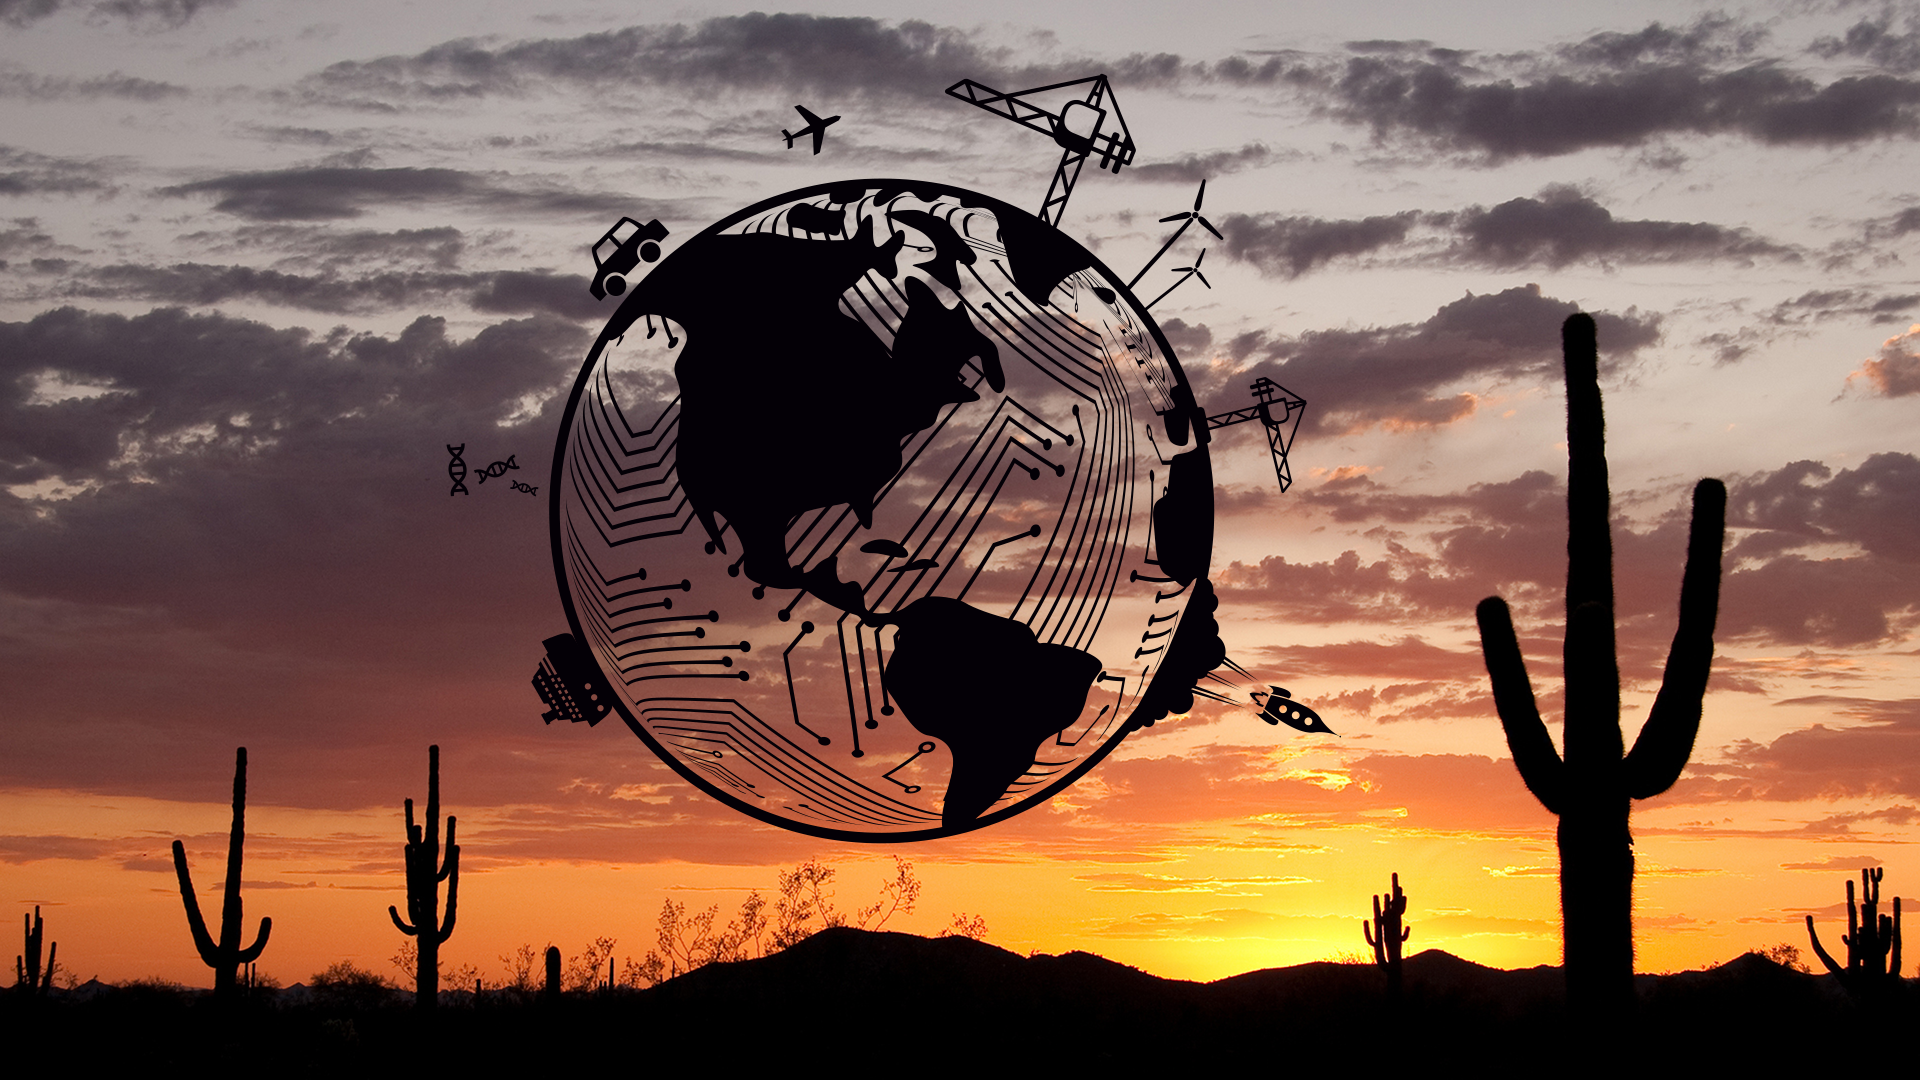 A graphic of a globe featuring different engineering applications superimposed on a photo of a desert sunset.